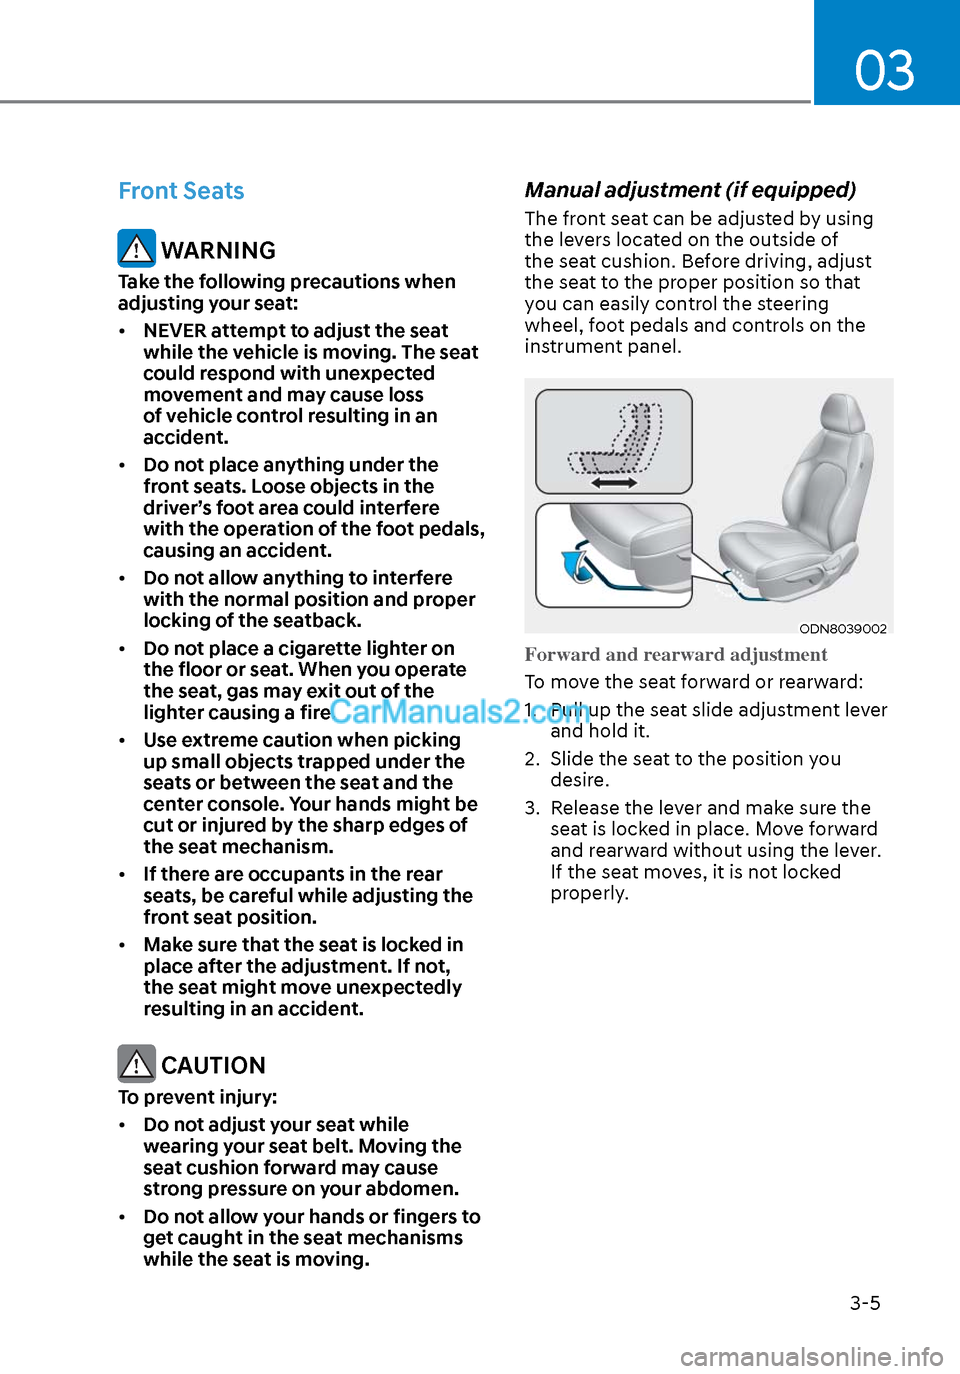 Hyundai Sonata 2020 Owners Guide 03 3-5 Front Seats  WARNING Take the following precautions when  adjusting your seat: • NEVER attempt to adjust the seat  while the vehicle is moving. The seat  could respond with unexpected  moveme